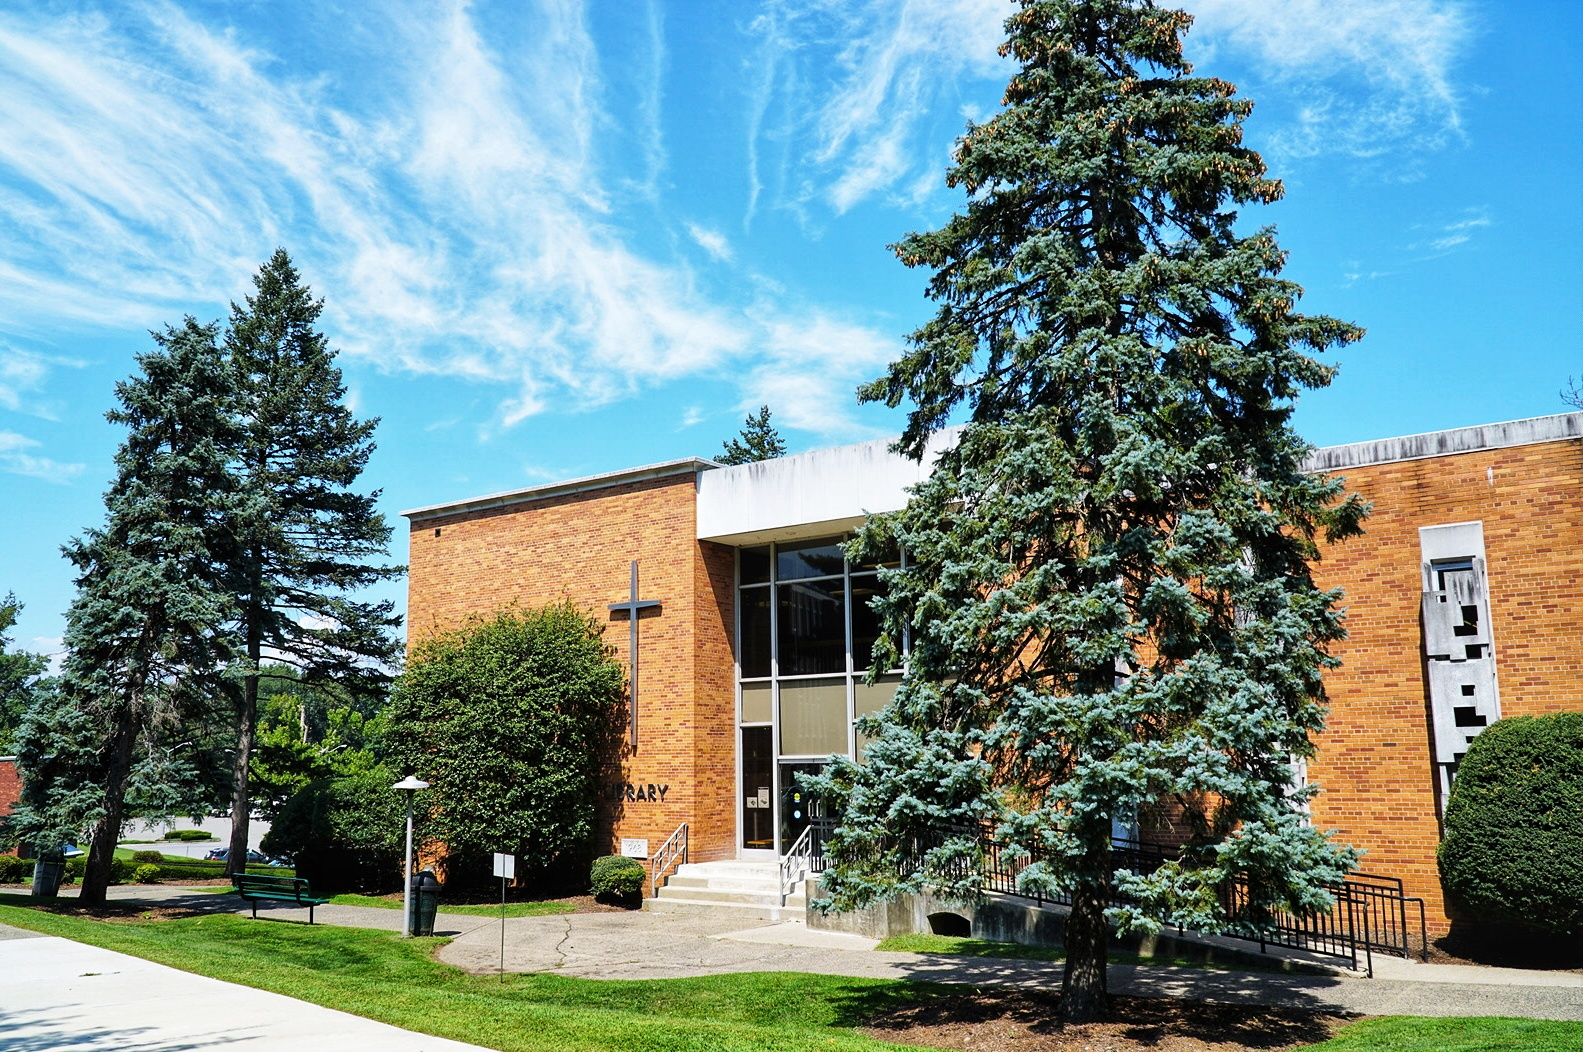 Image of the front pf the lodi campus library